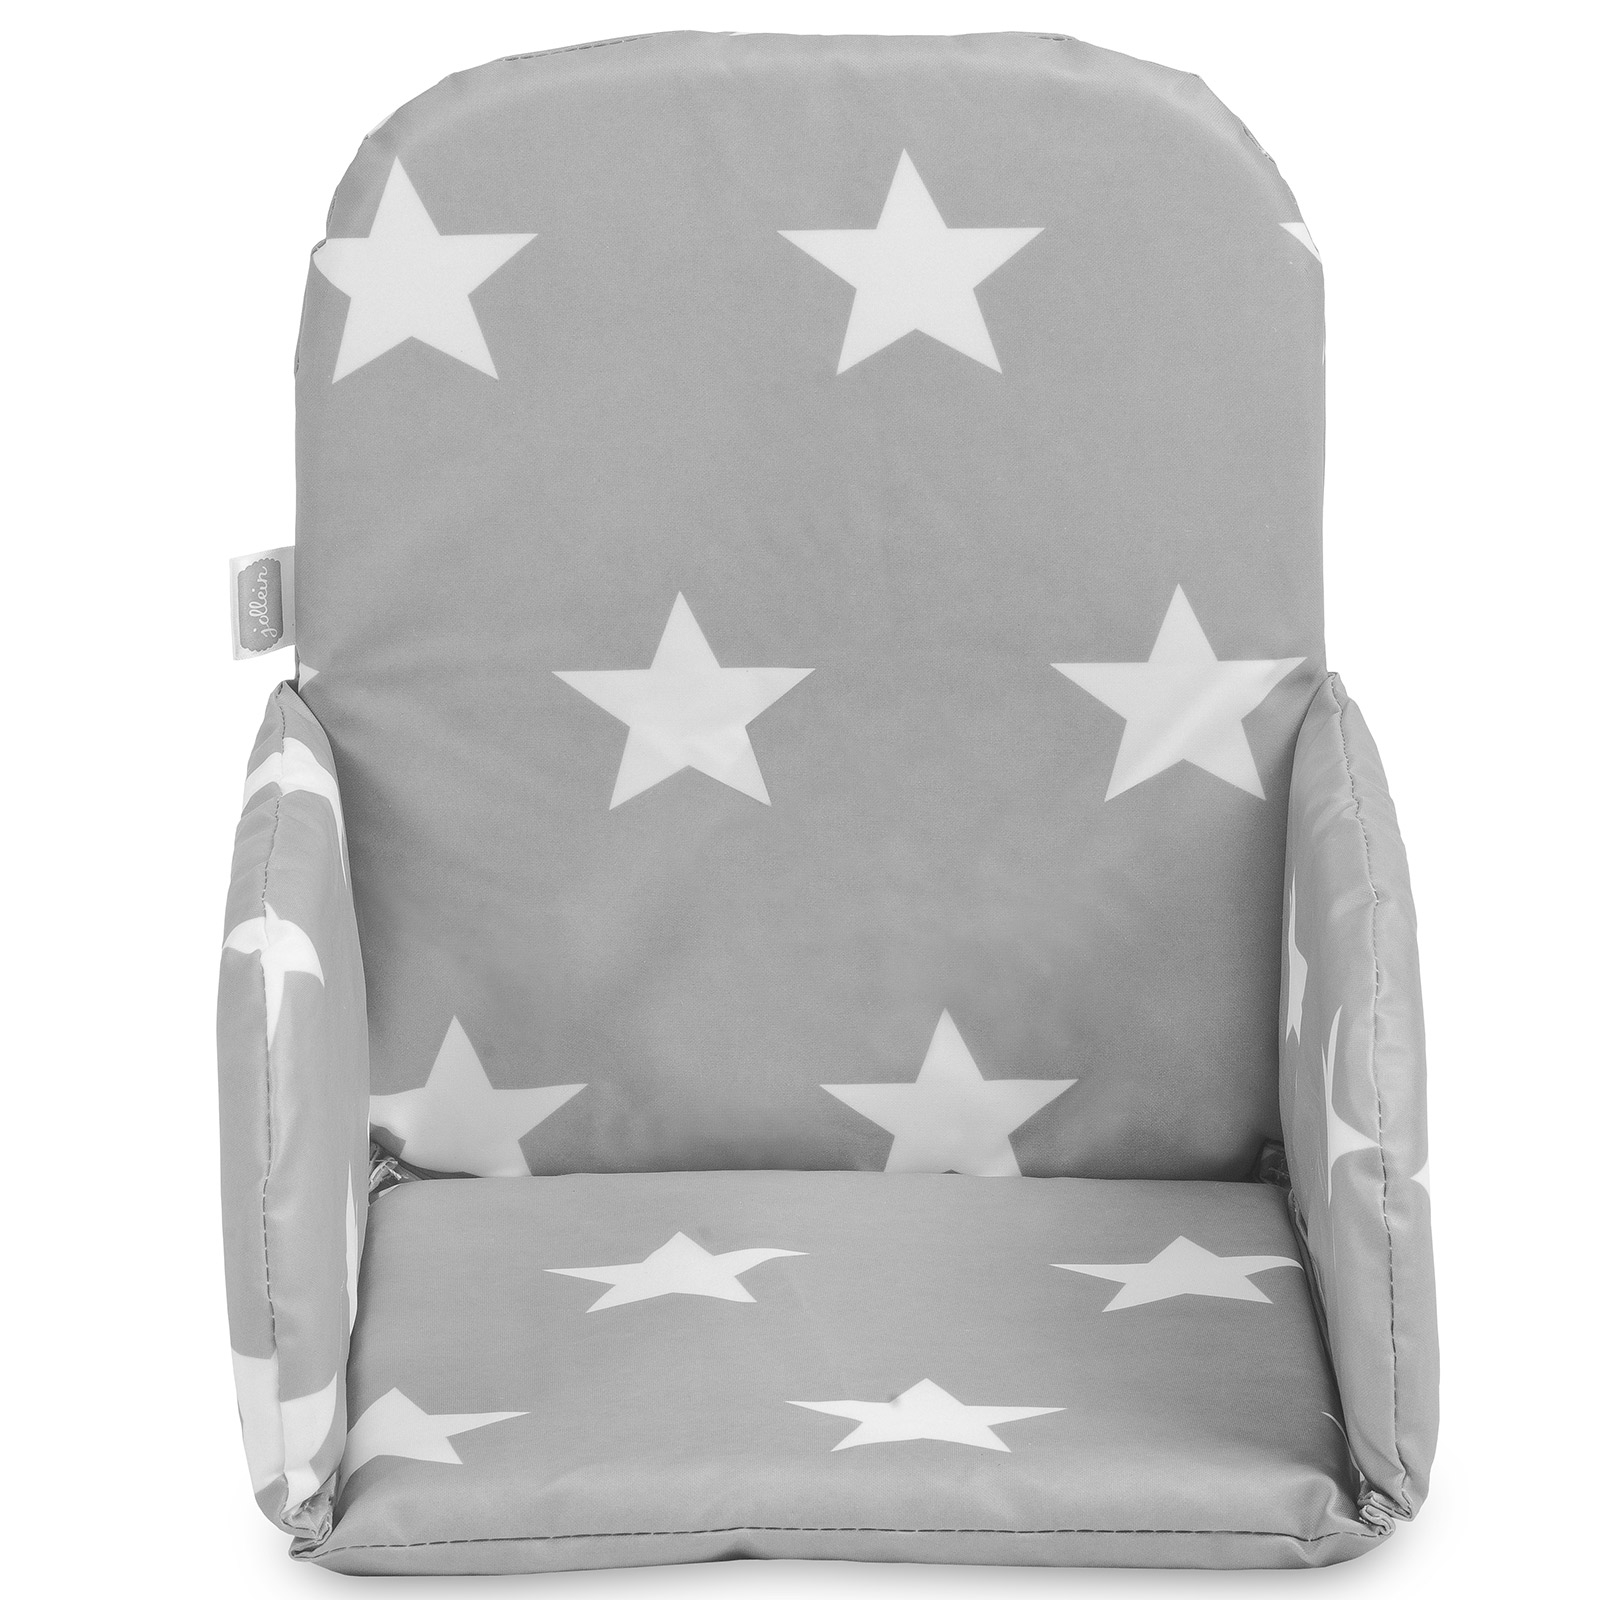 Coussin Chaise Haute Little Star Toile Gris Anthracite